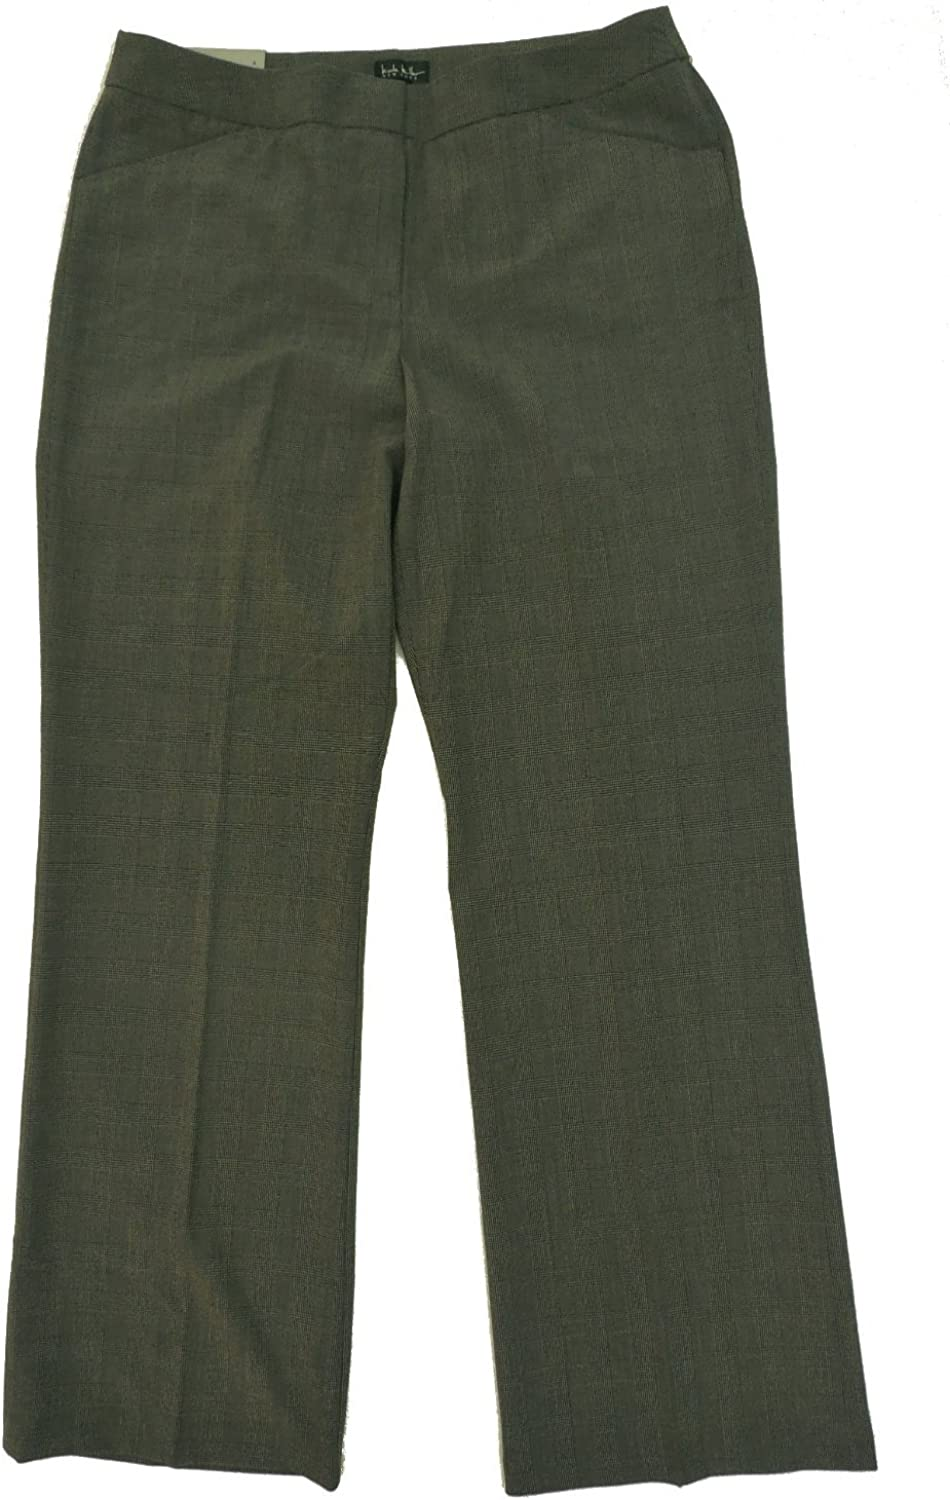 Nicole Miller Womens Essential Easy Care Pant 6 Dark Charcoal Heather